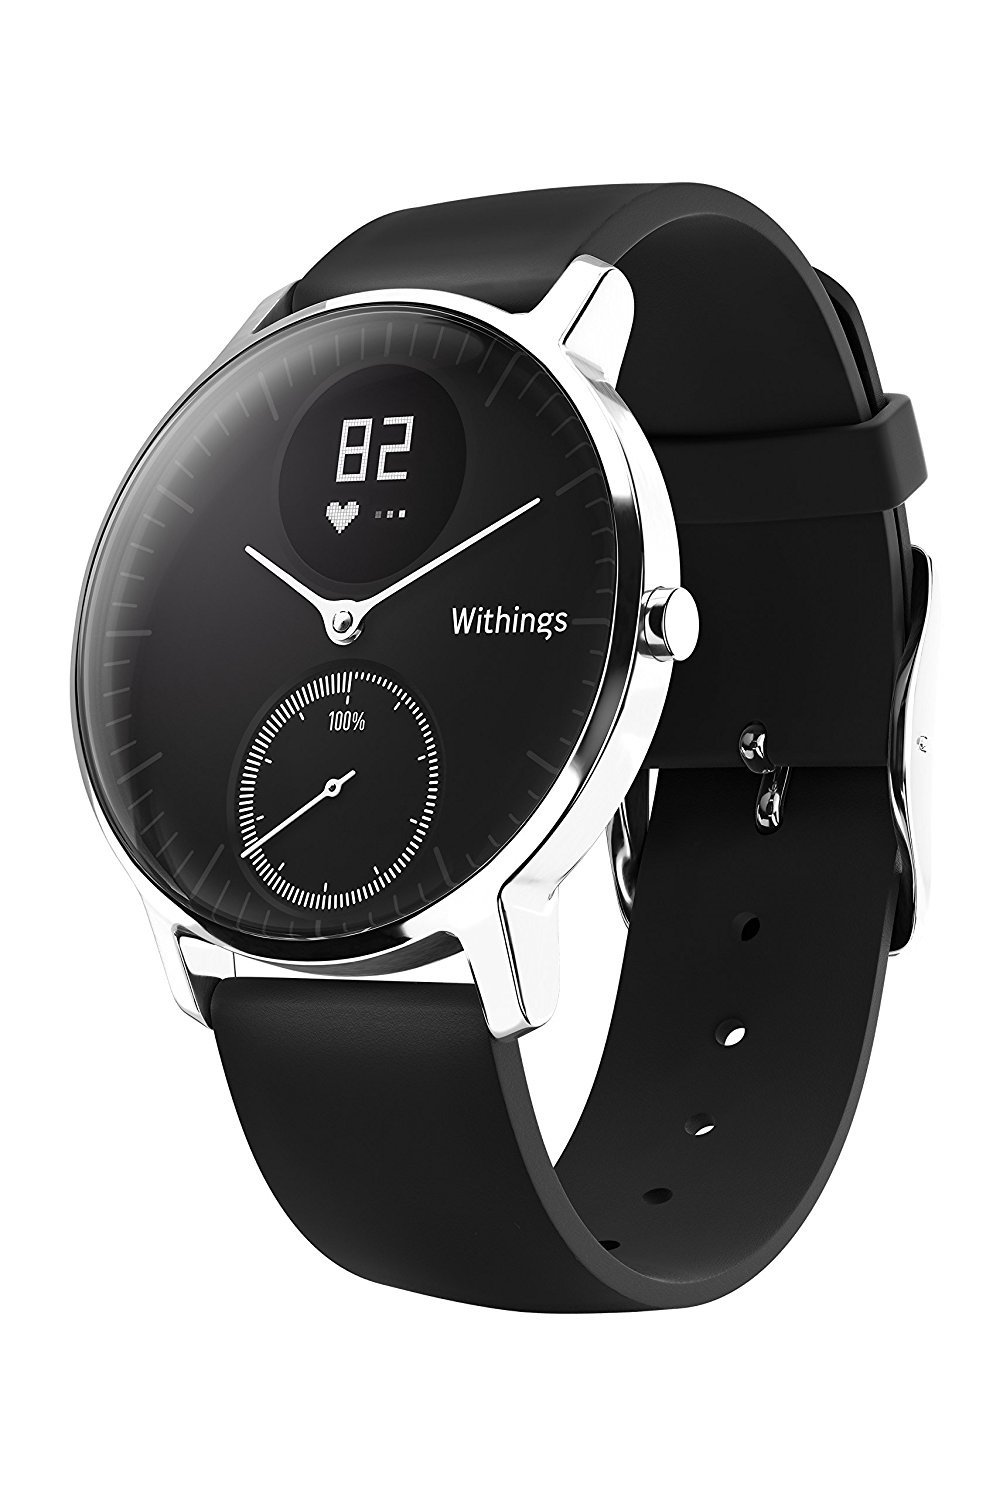 Withings Fitnessuhr amazon